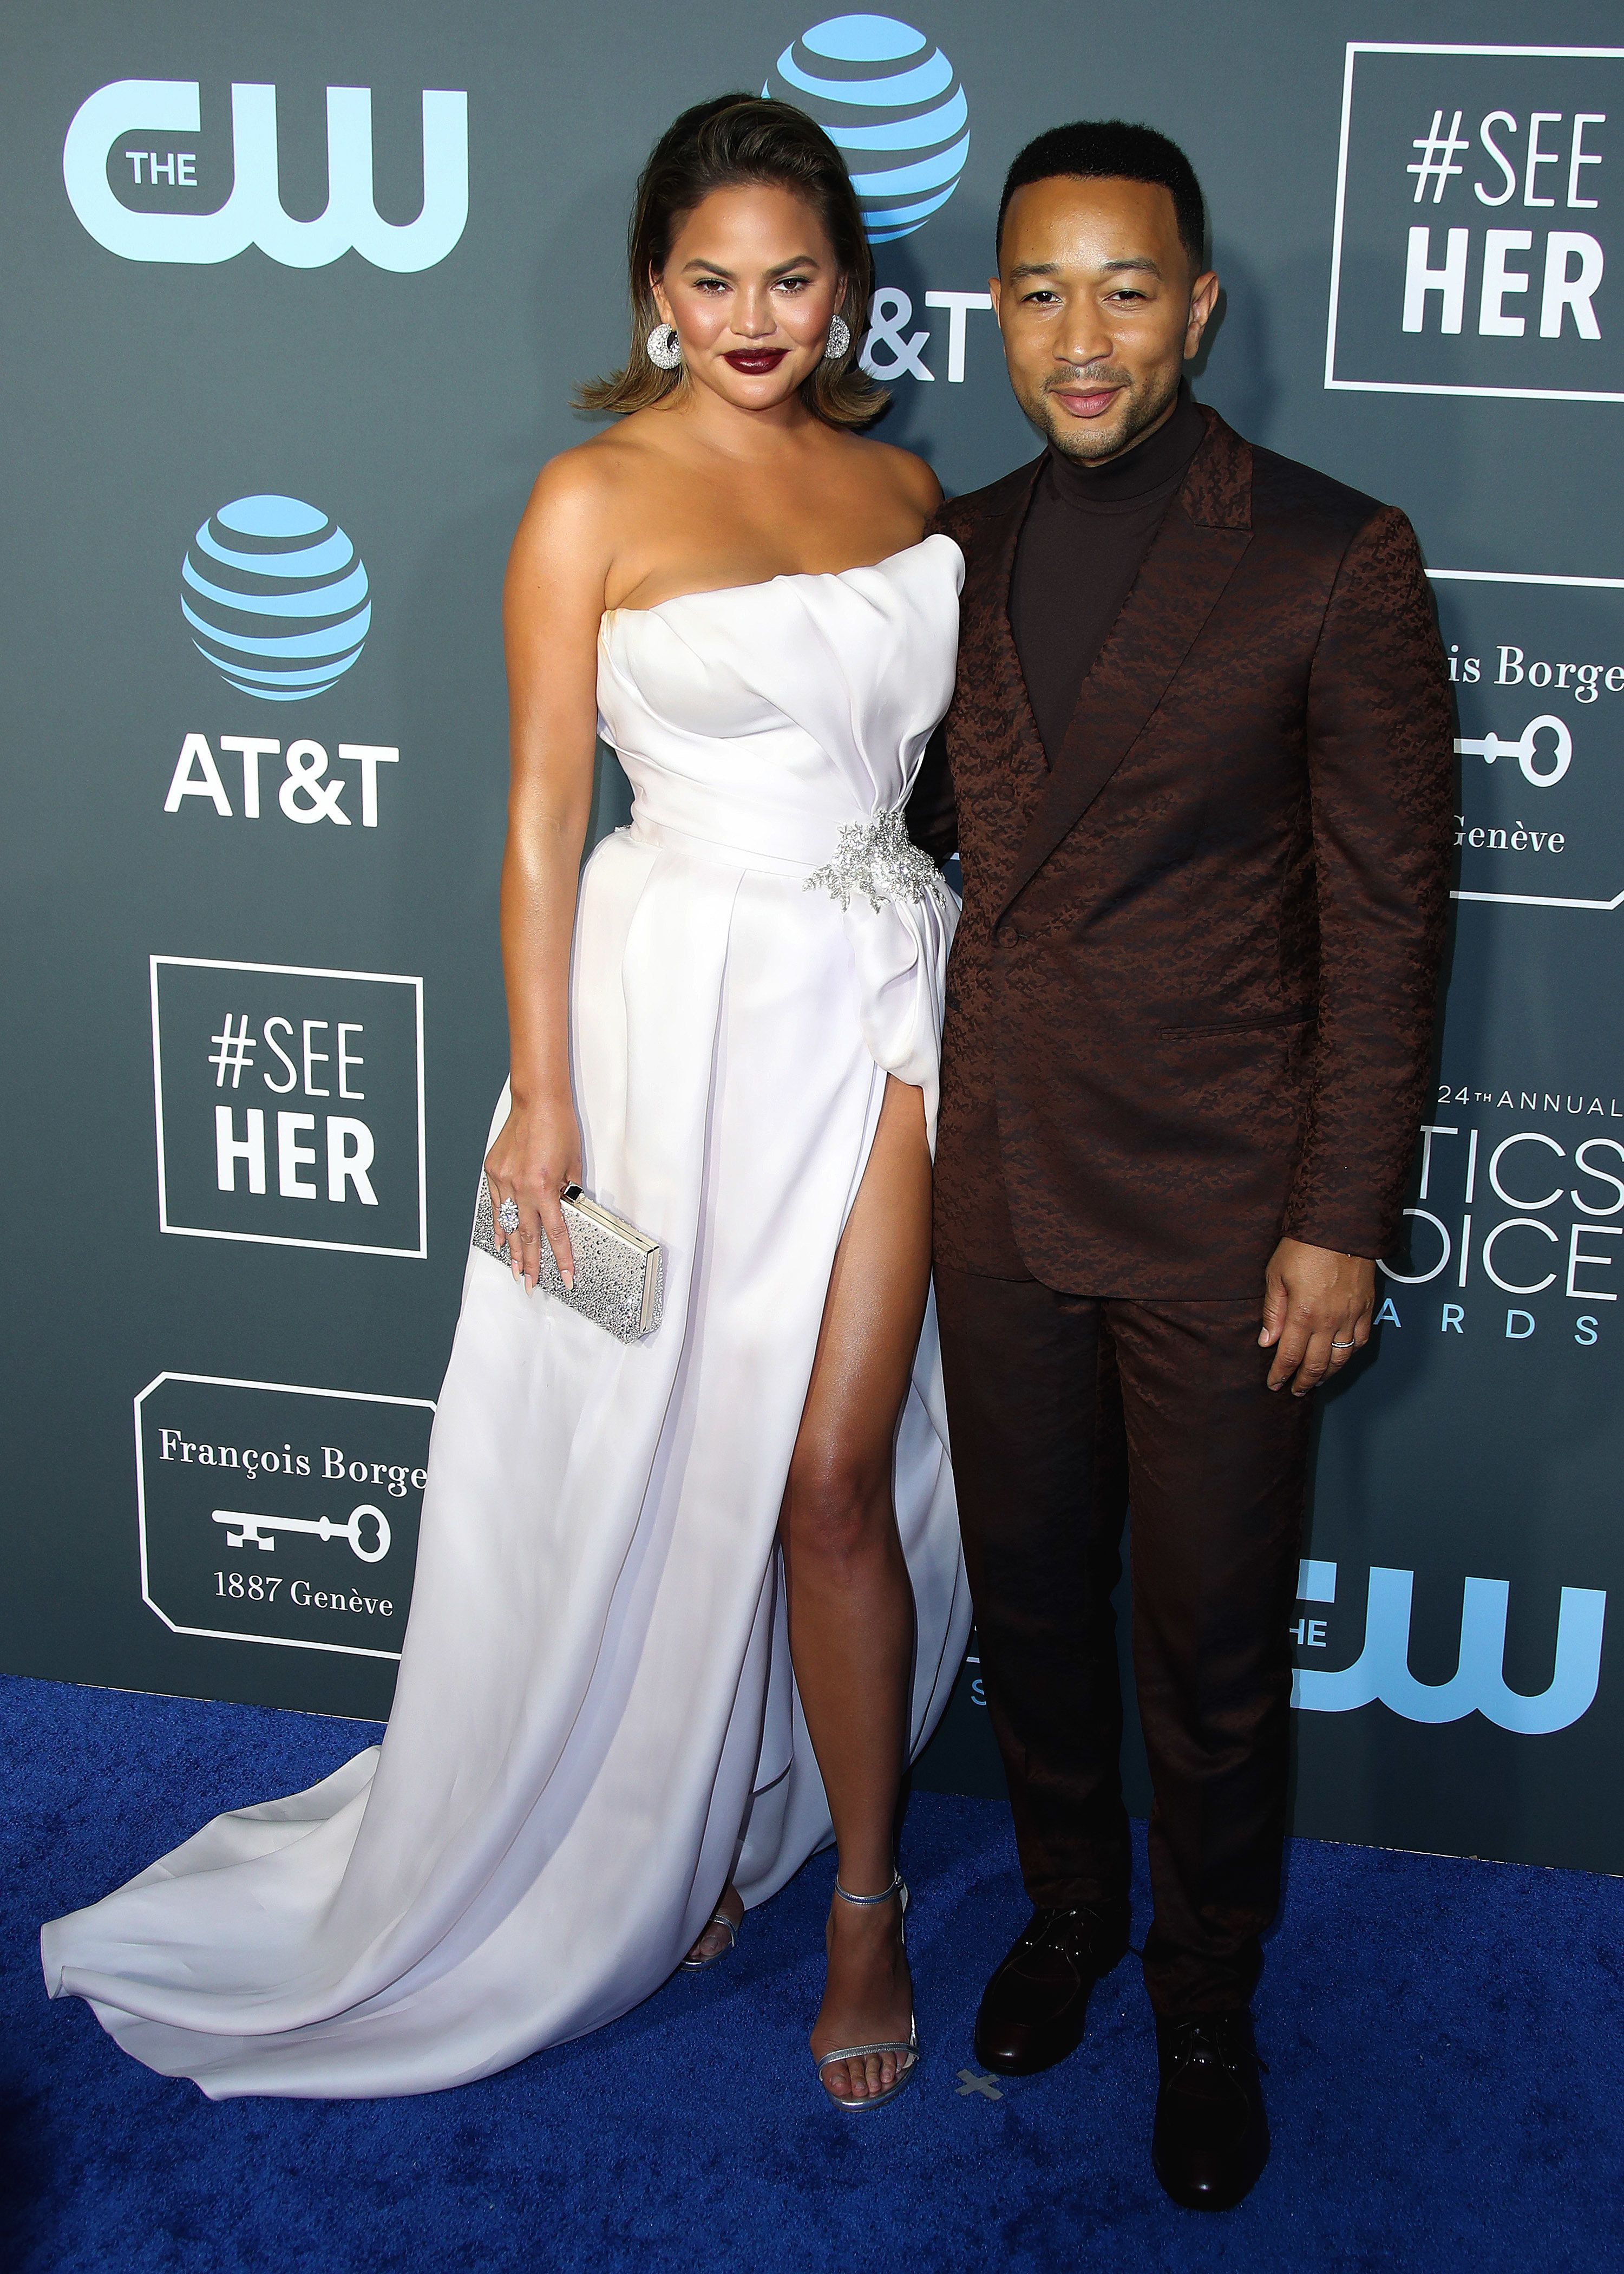 Chrissy Teigen On How She Avoids The 'Same, Dumb' Fights With John